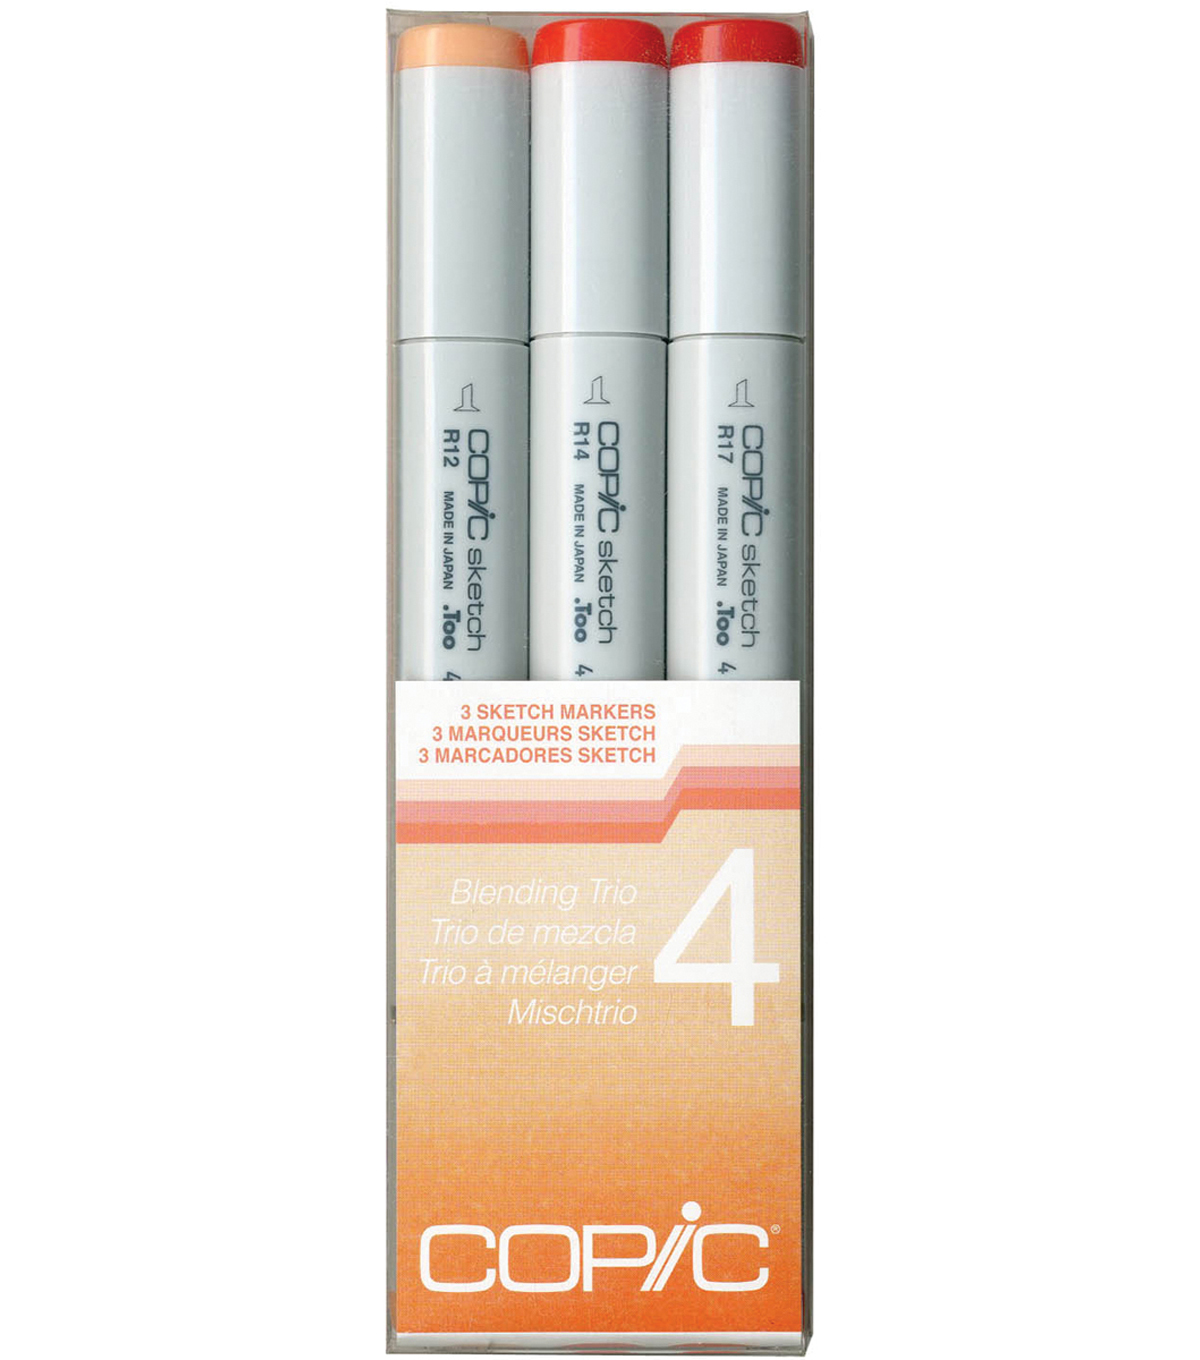 Copic Sketch Blending Trio Markers-Set 4